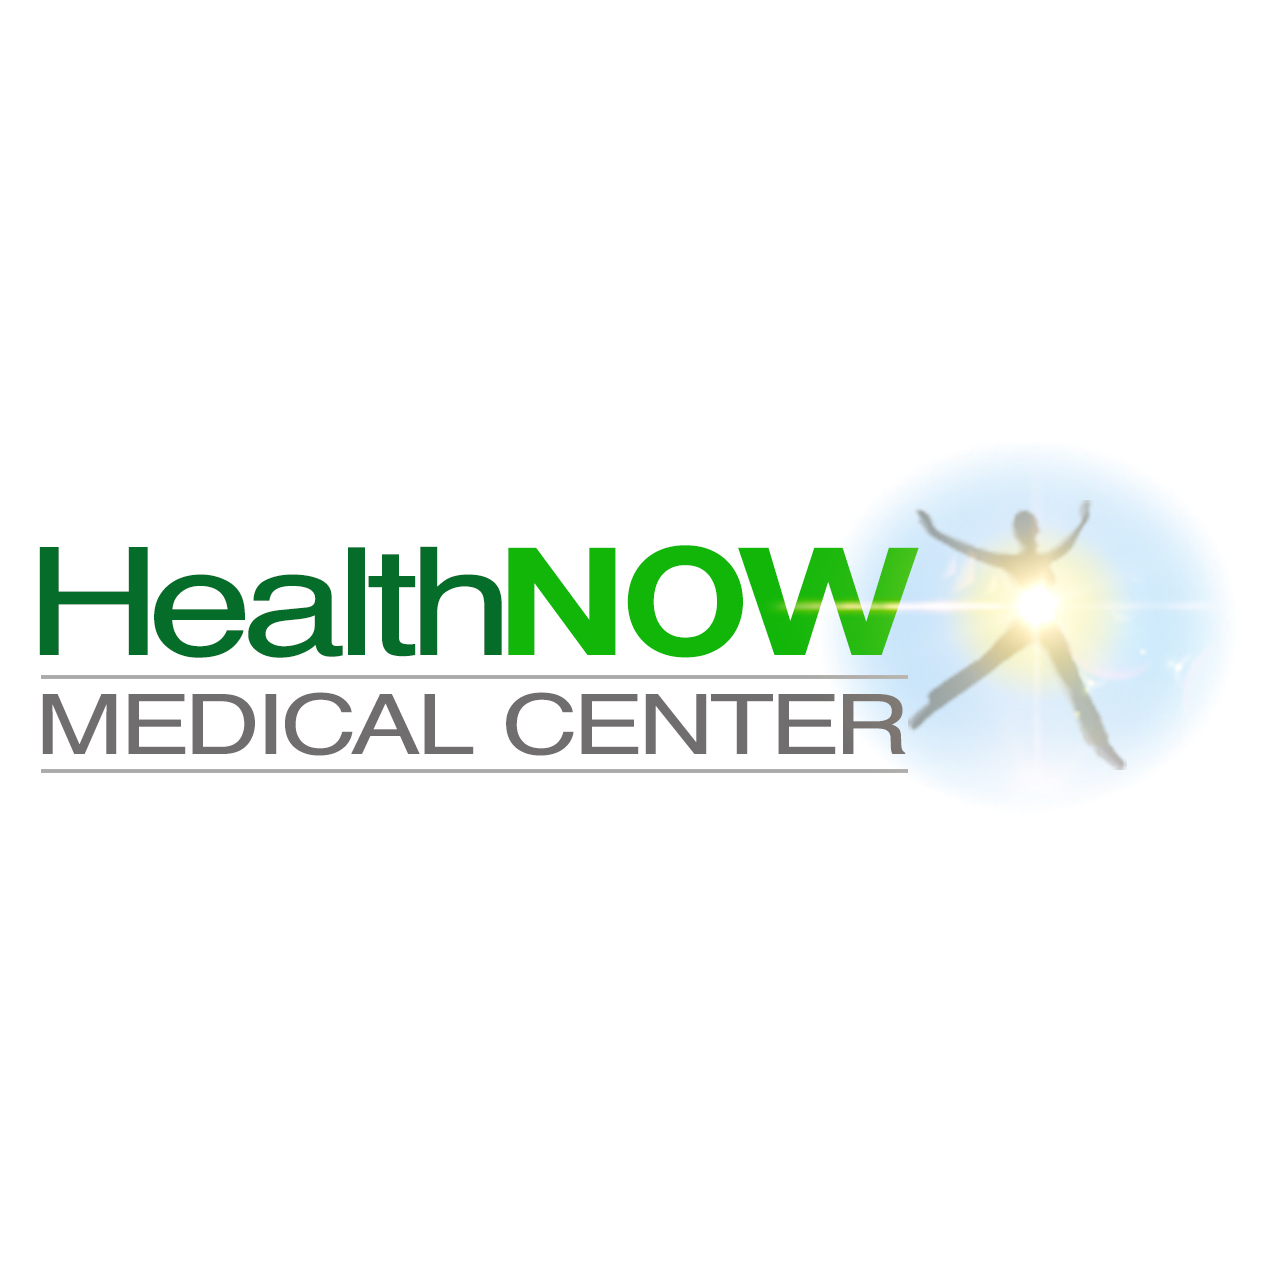 HealthNOW Medical Center image 5